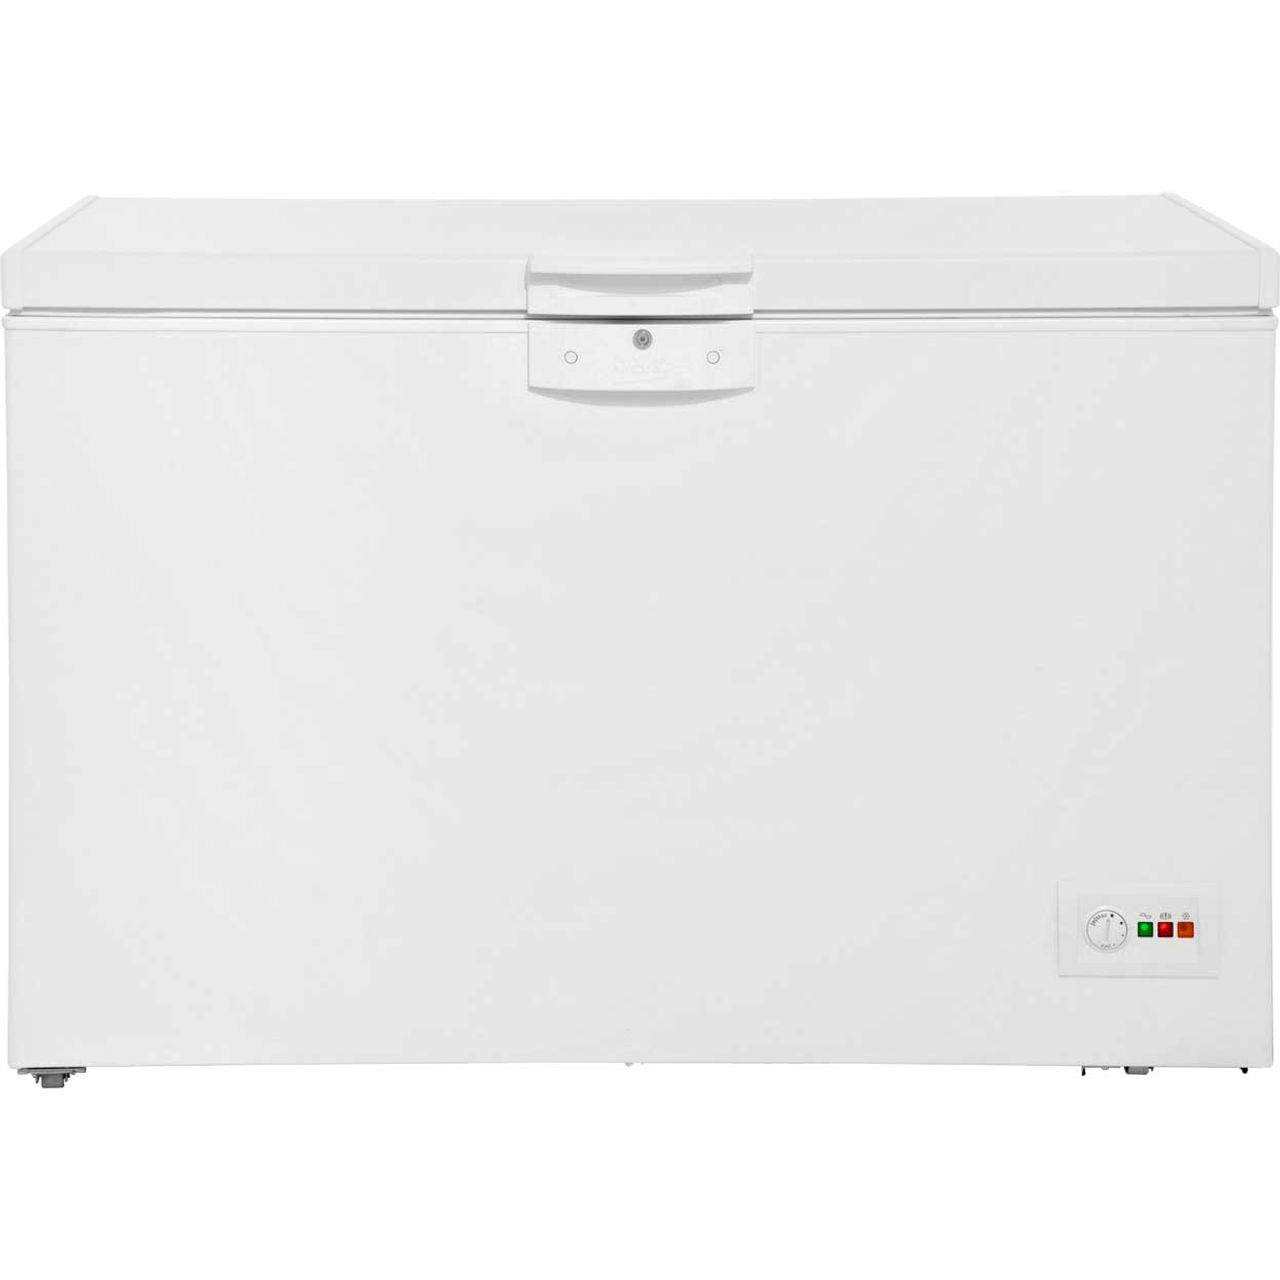 Beko CF1300APW Chest Freezer - White